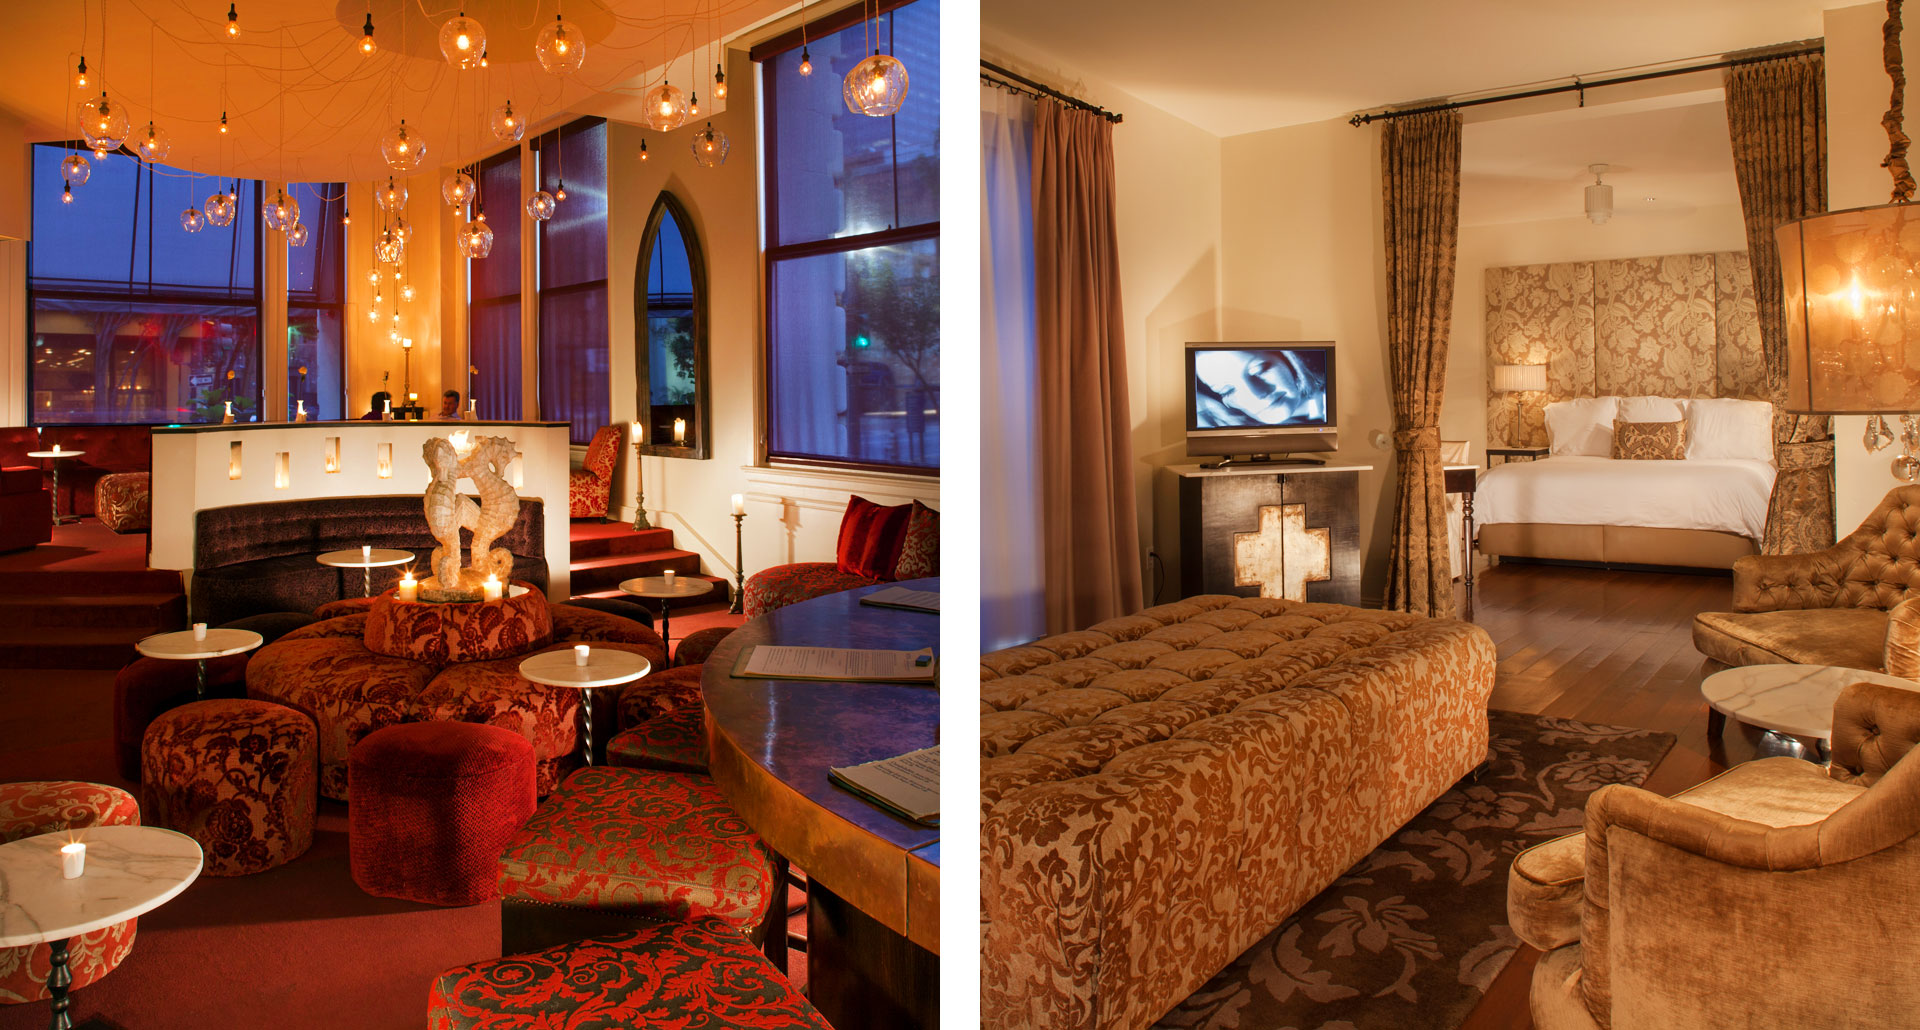 International House - boutique hotel in New Orleans